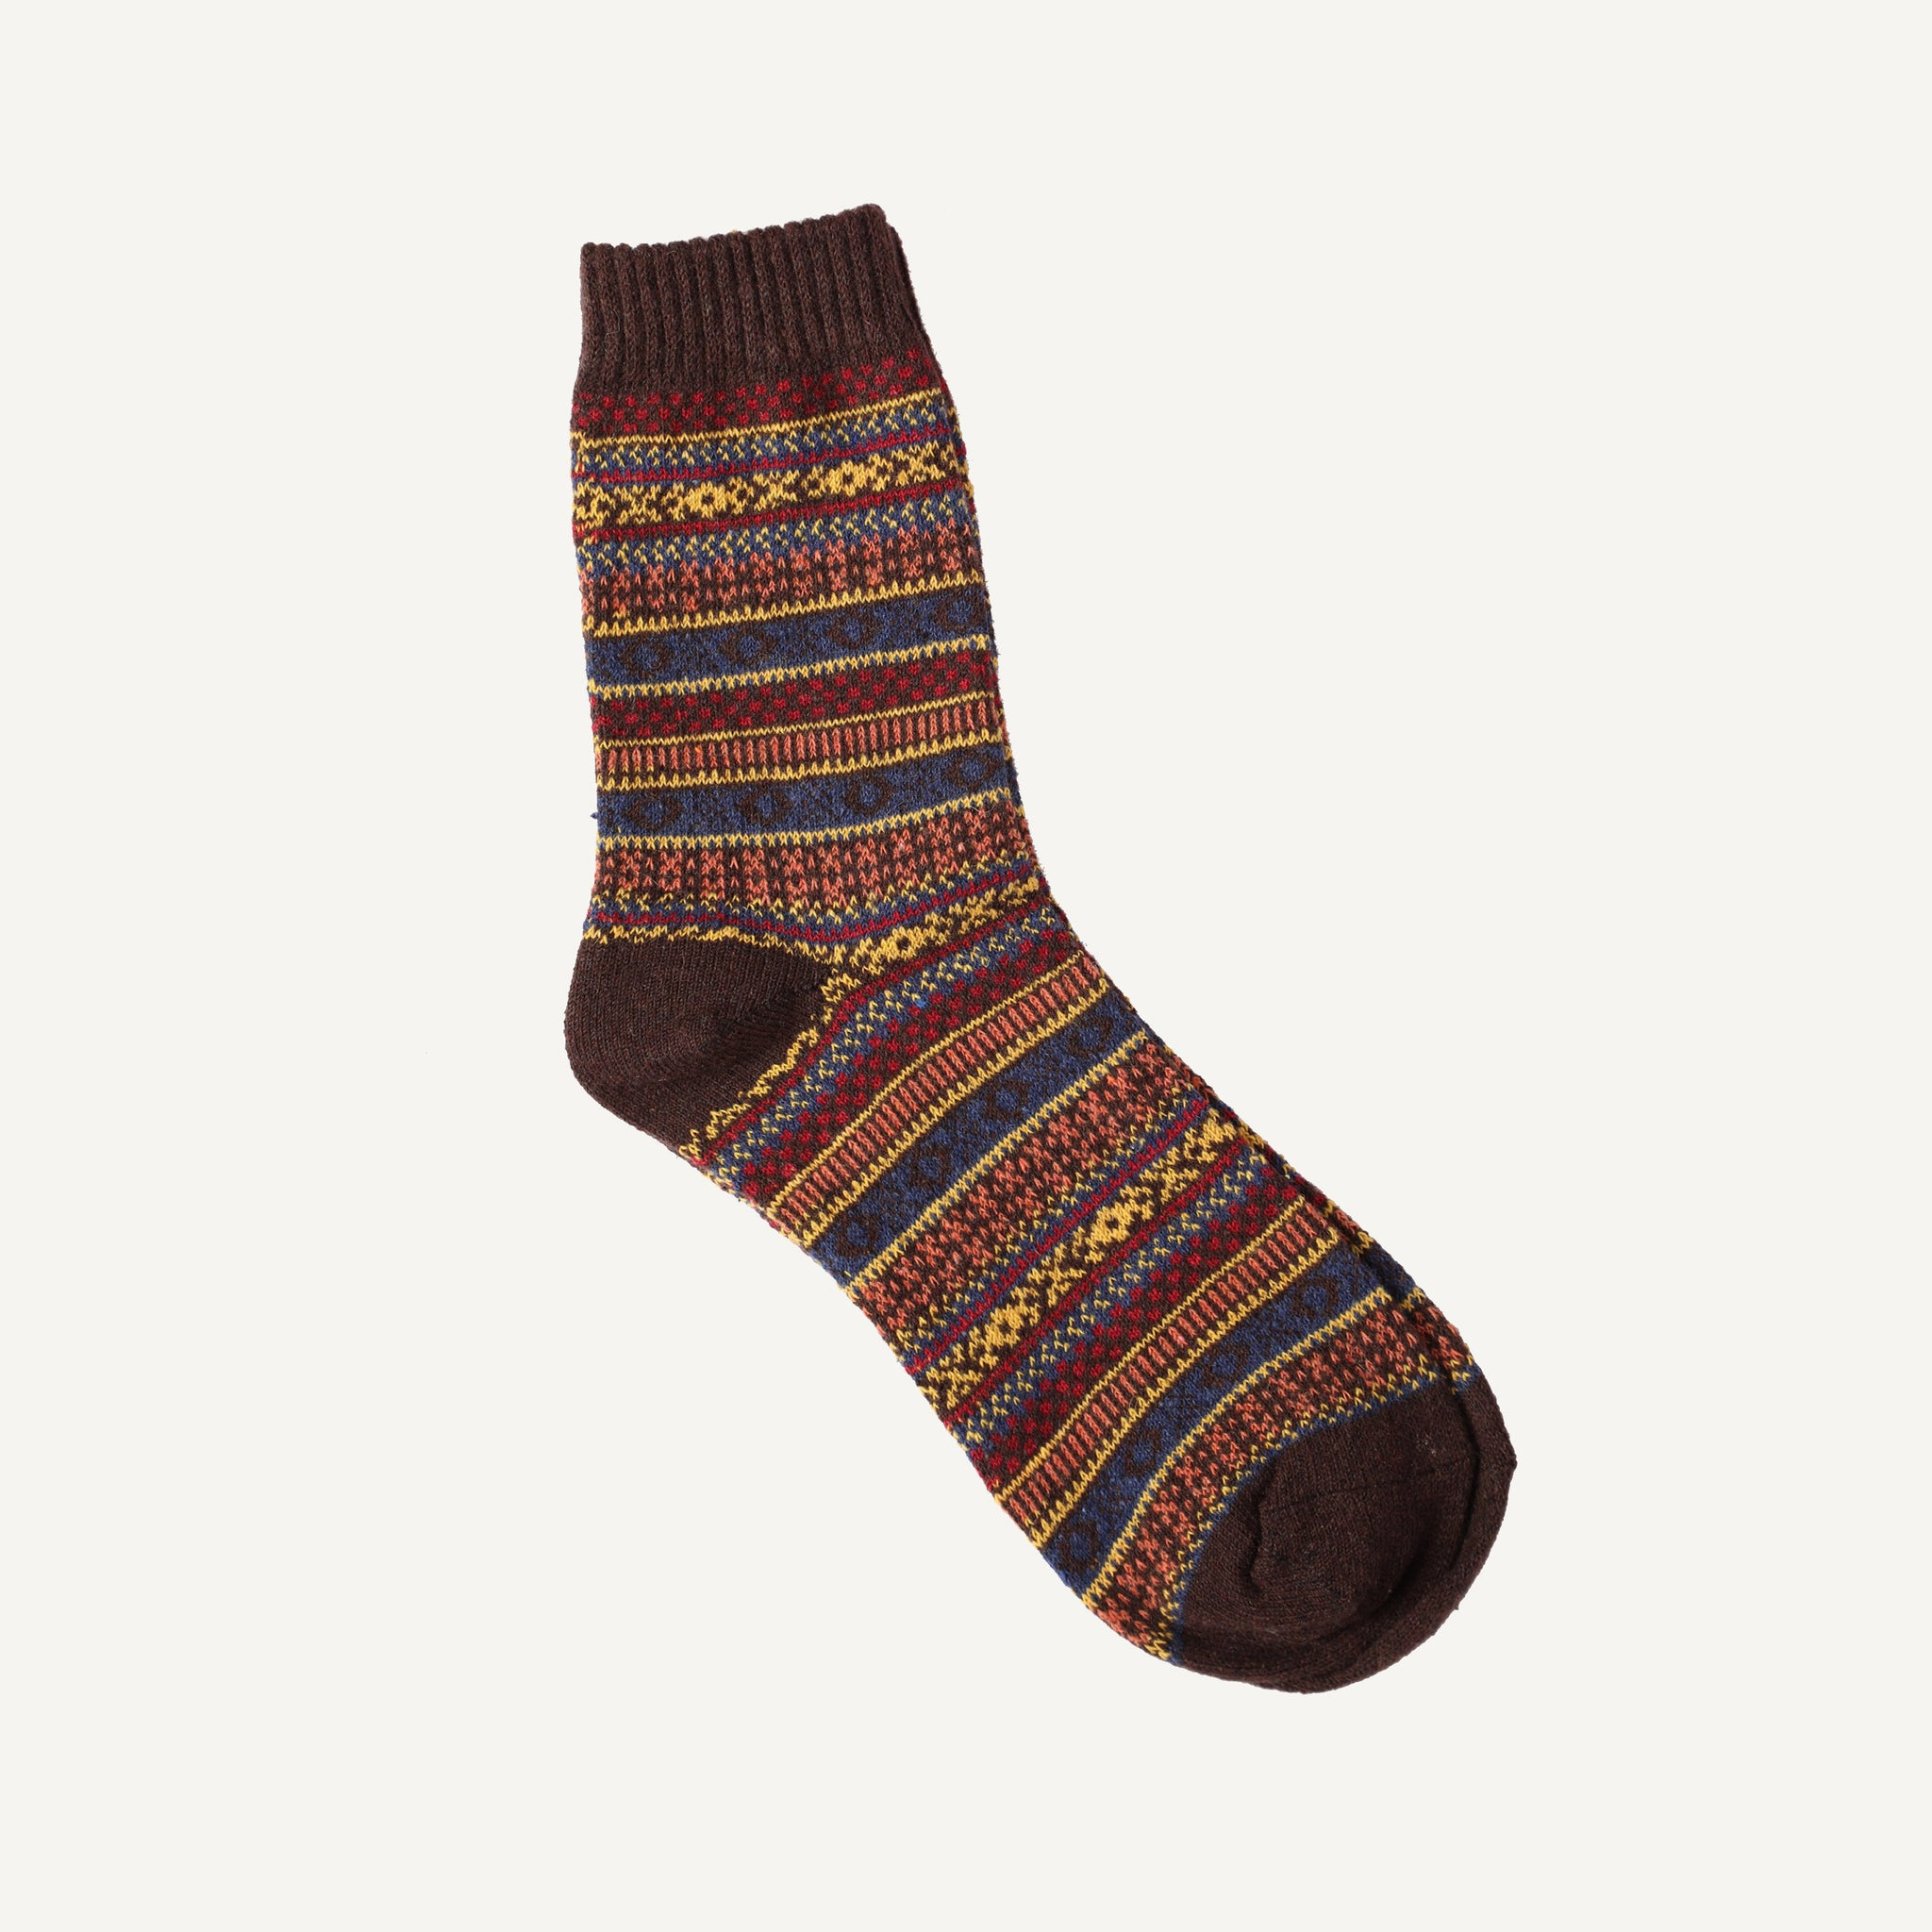 NORWEGIAN SOCKS - SMALL